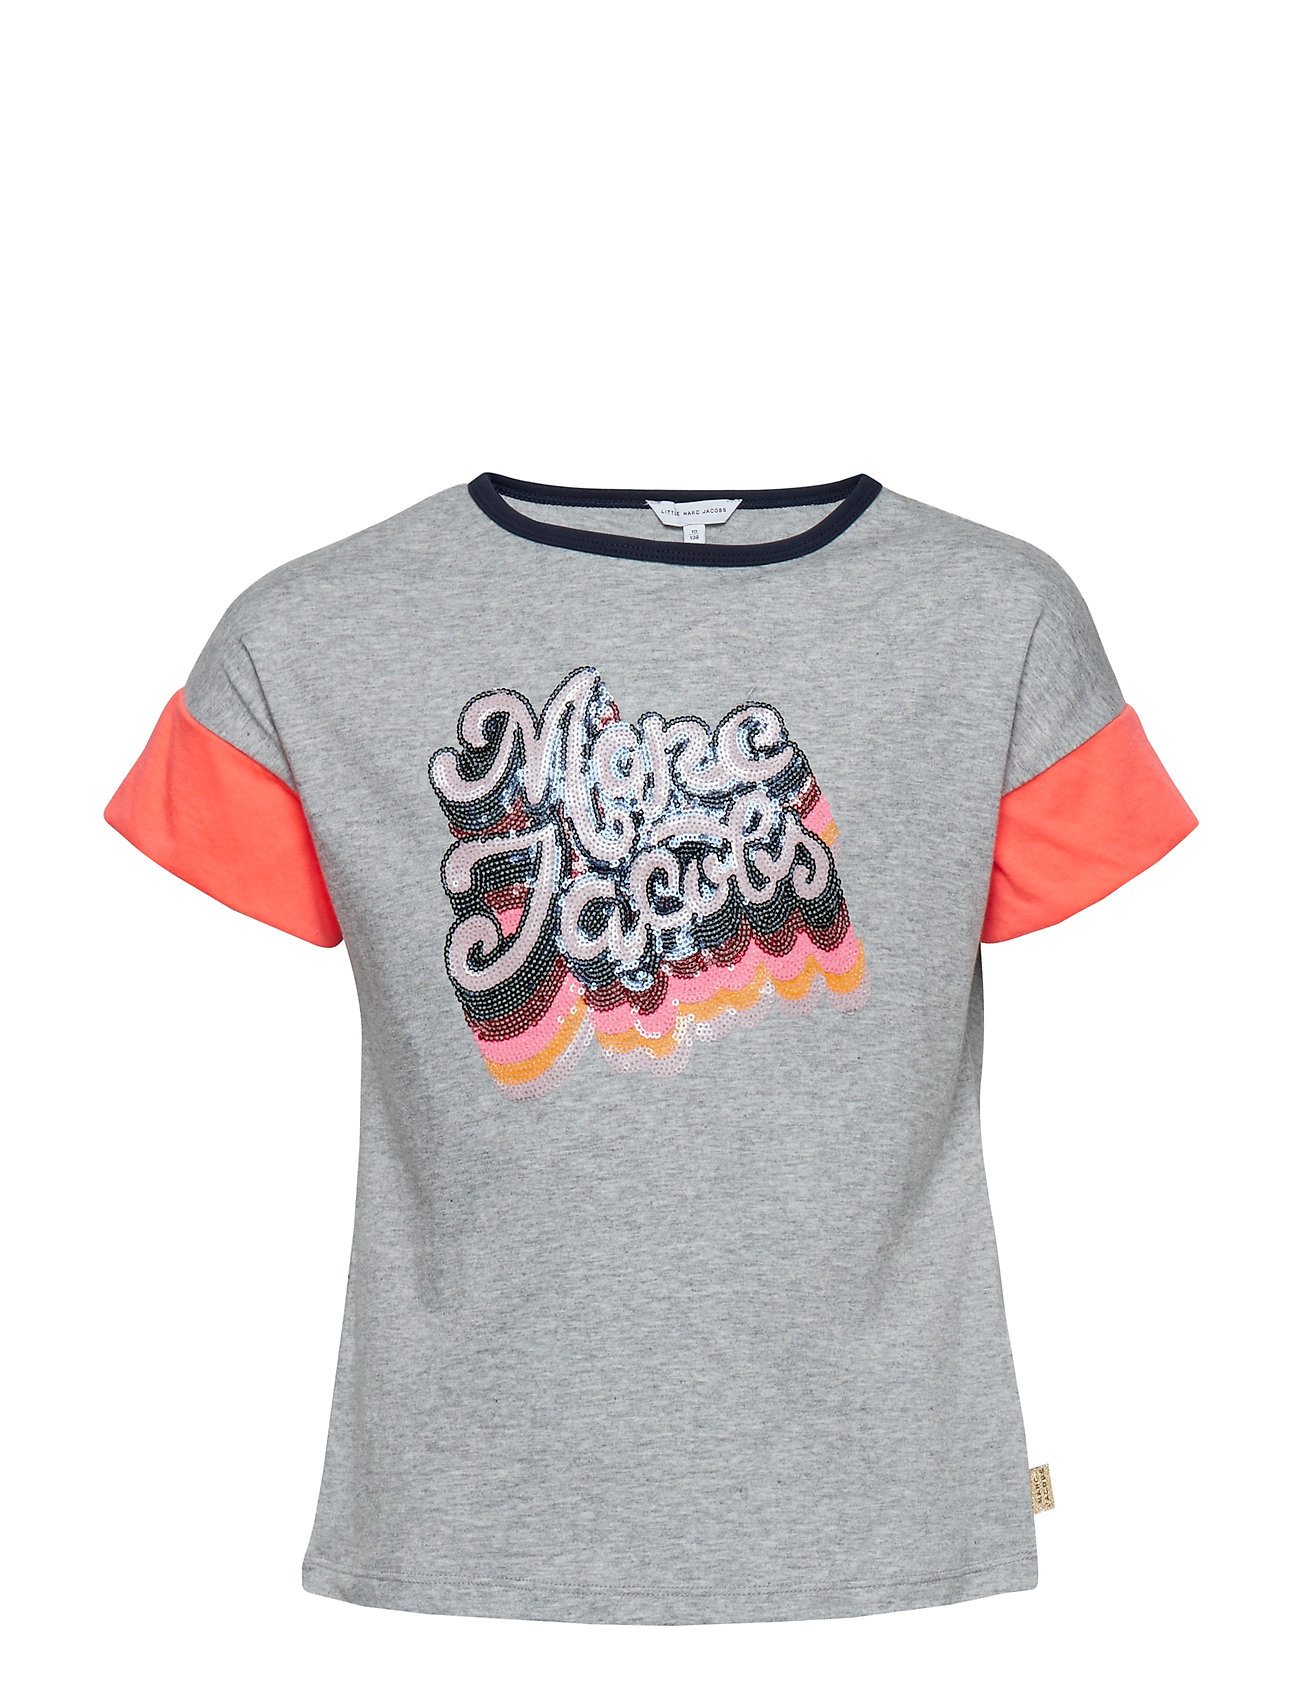 Little Marc Jacobs T-SHIRT - GREY MARL